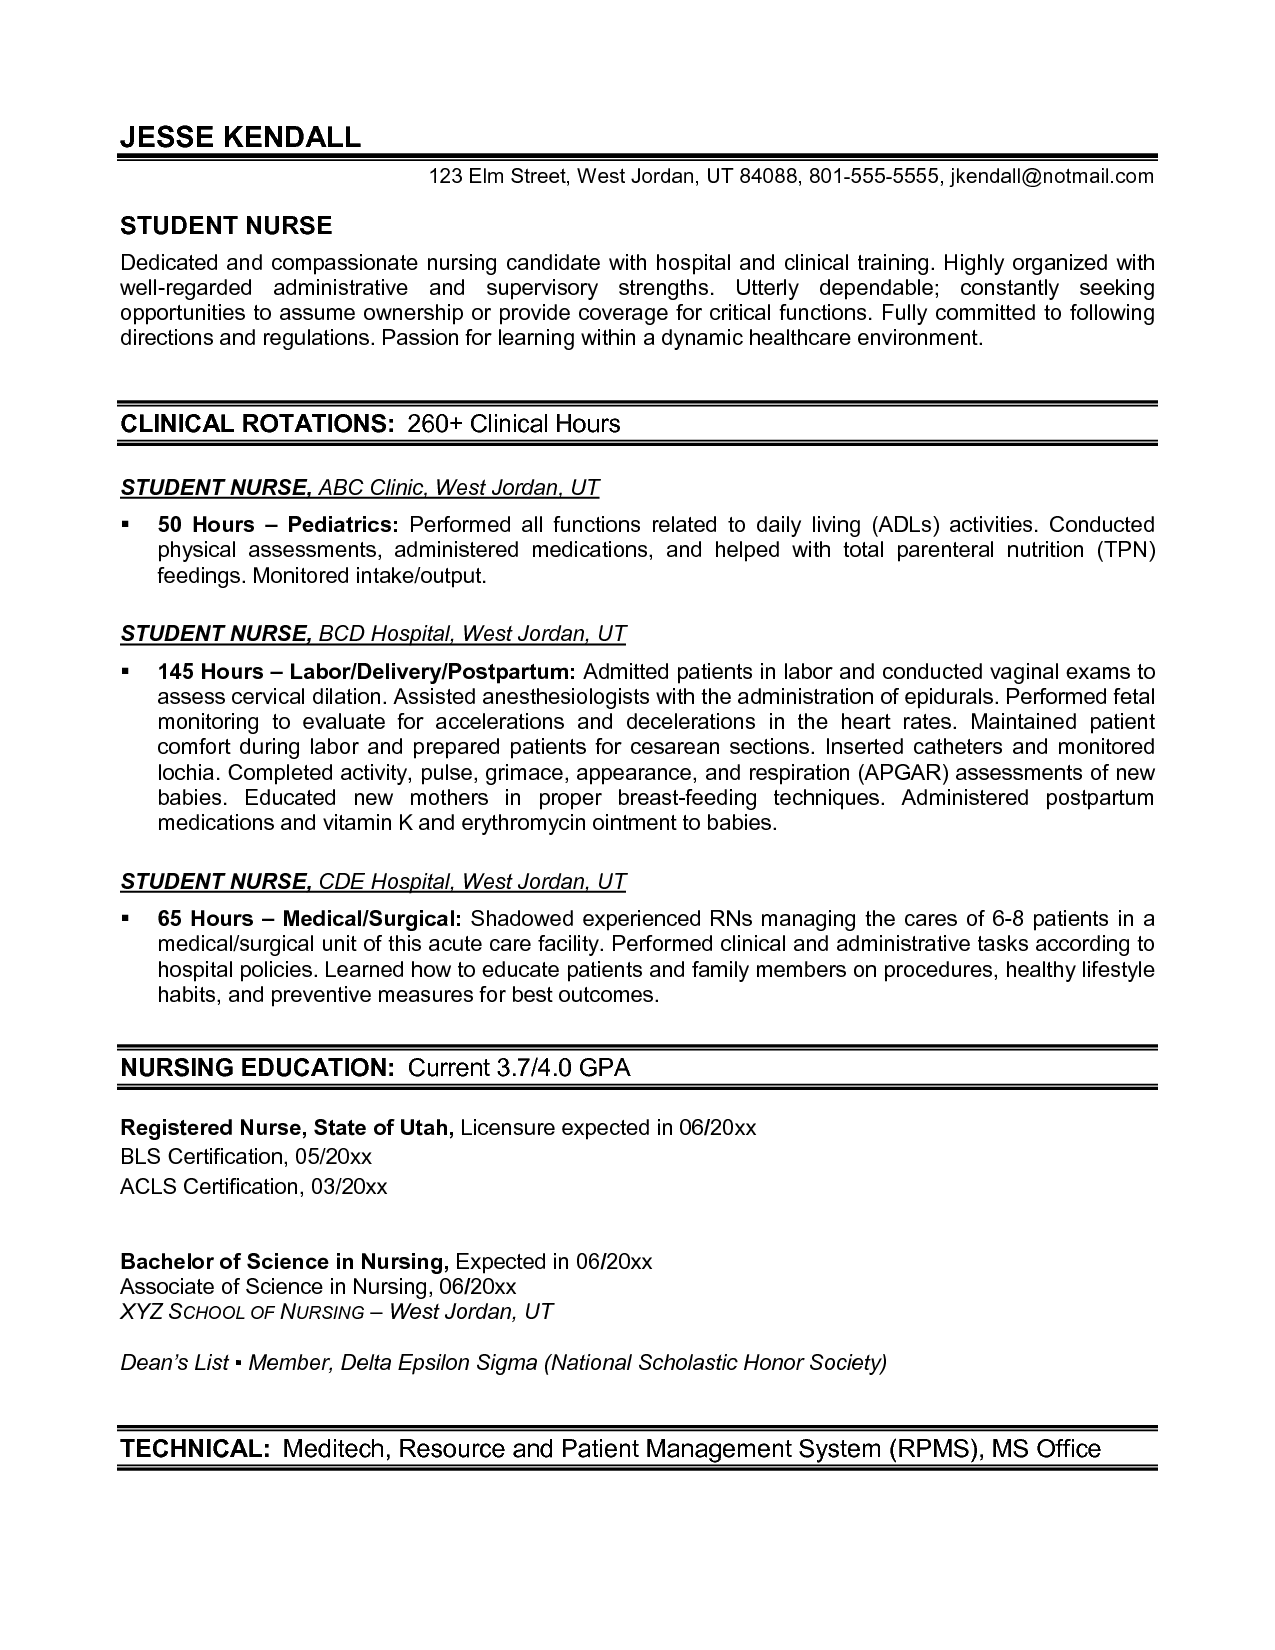 Rn Resume Samples Resume Template Nursing  Nursing  Pinterest  Nursing Resume